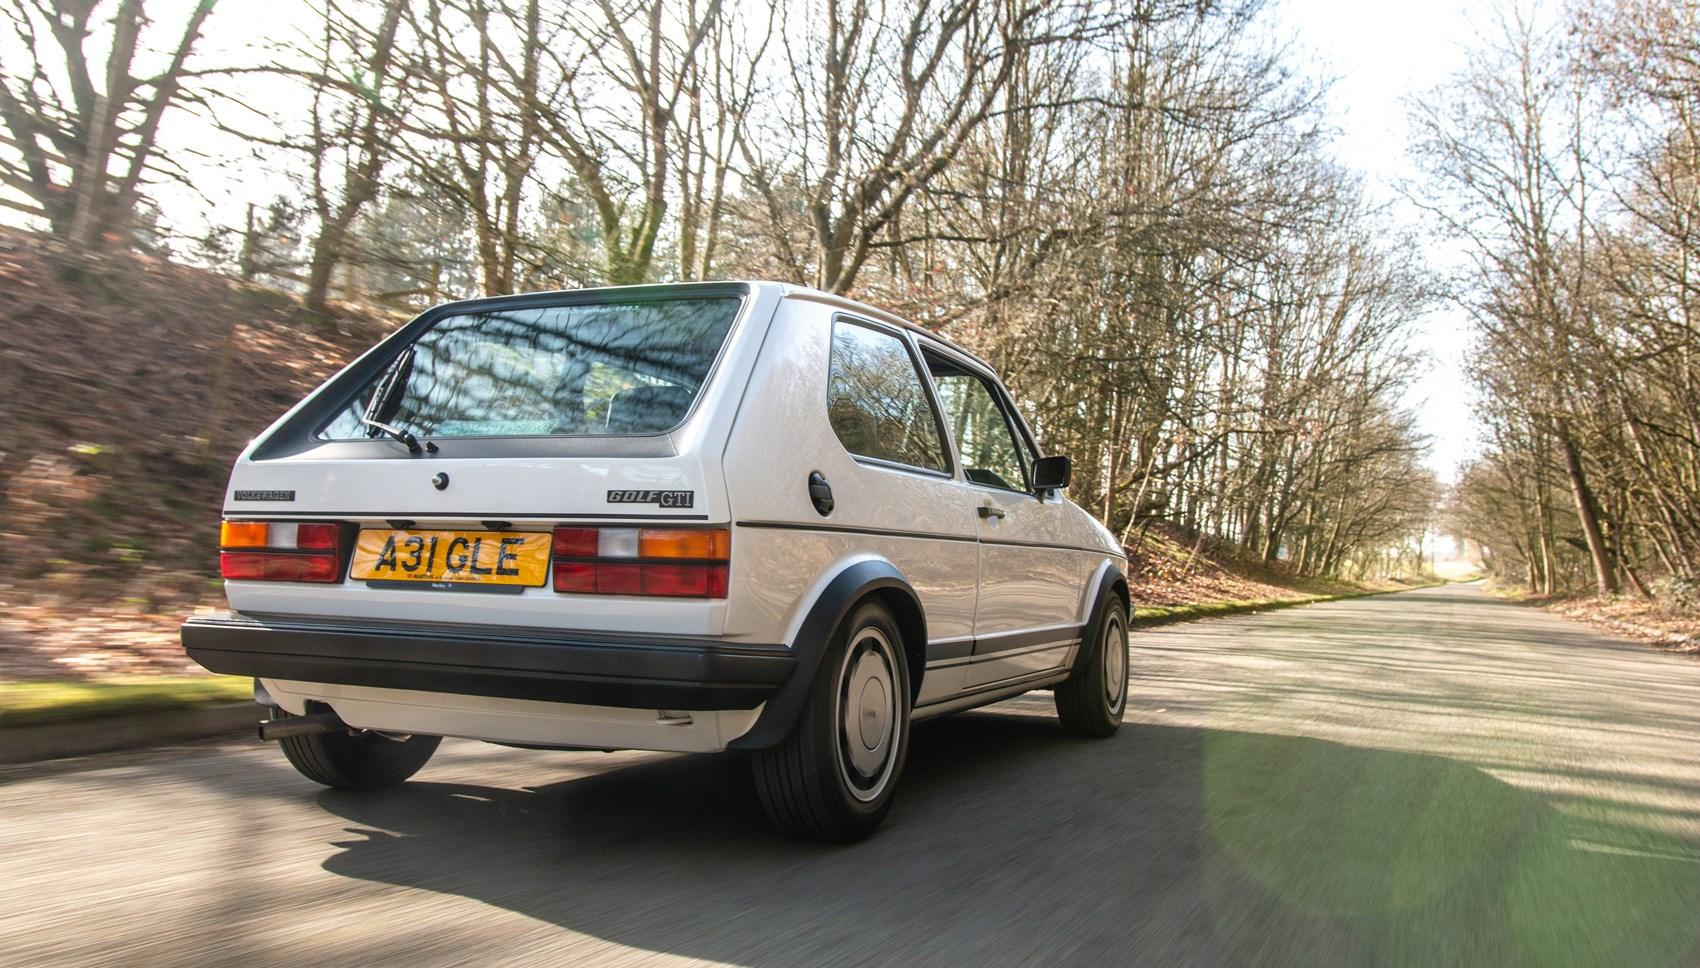 Golf GTI Mk1 rear tracking